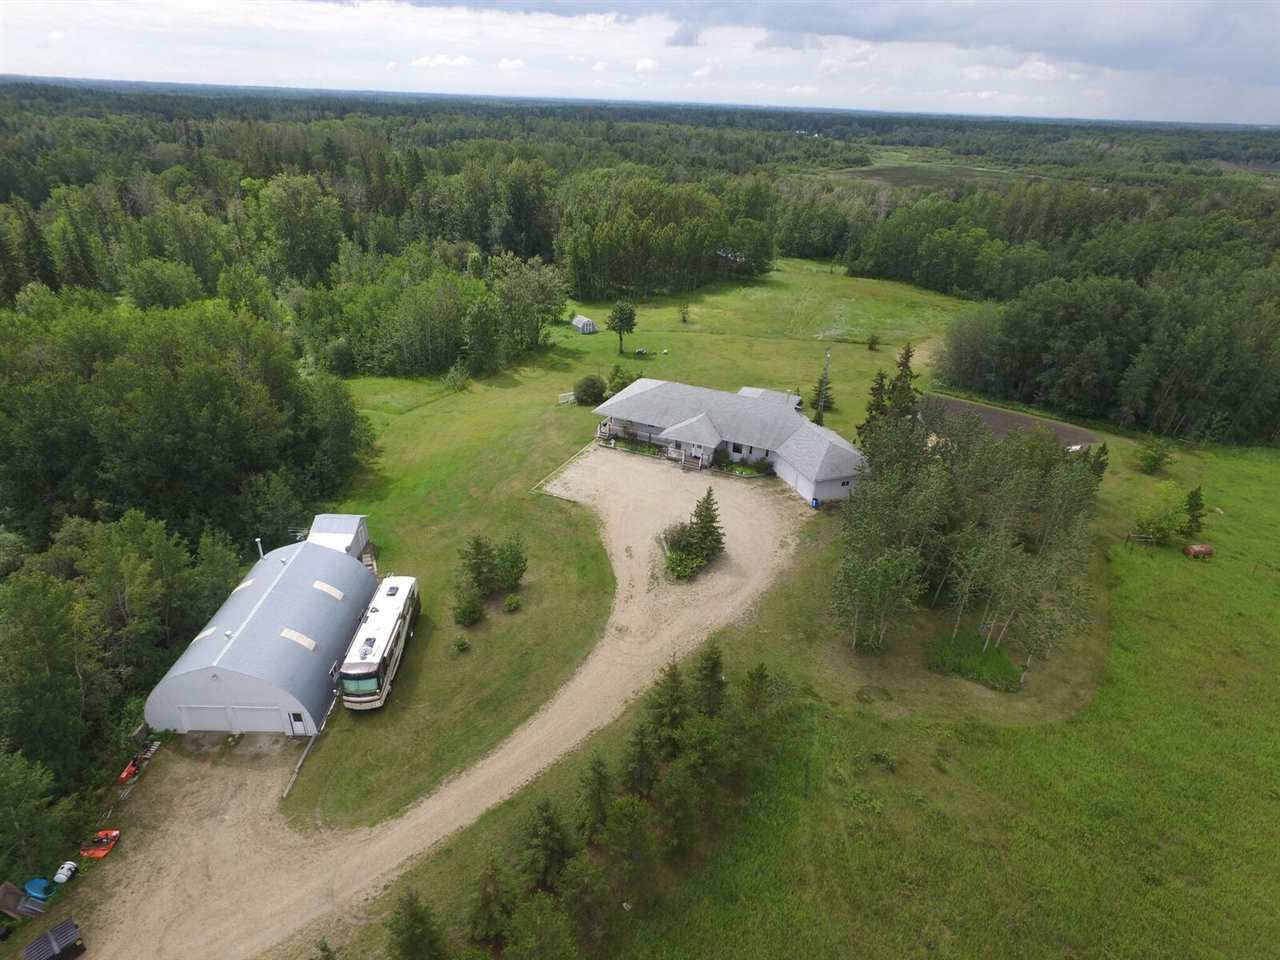 Photo 5: 51308A RGE RD 263A RD: Rural Parkland County House for sale : MLS® # E4028432